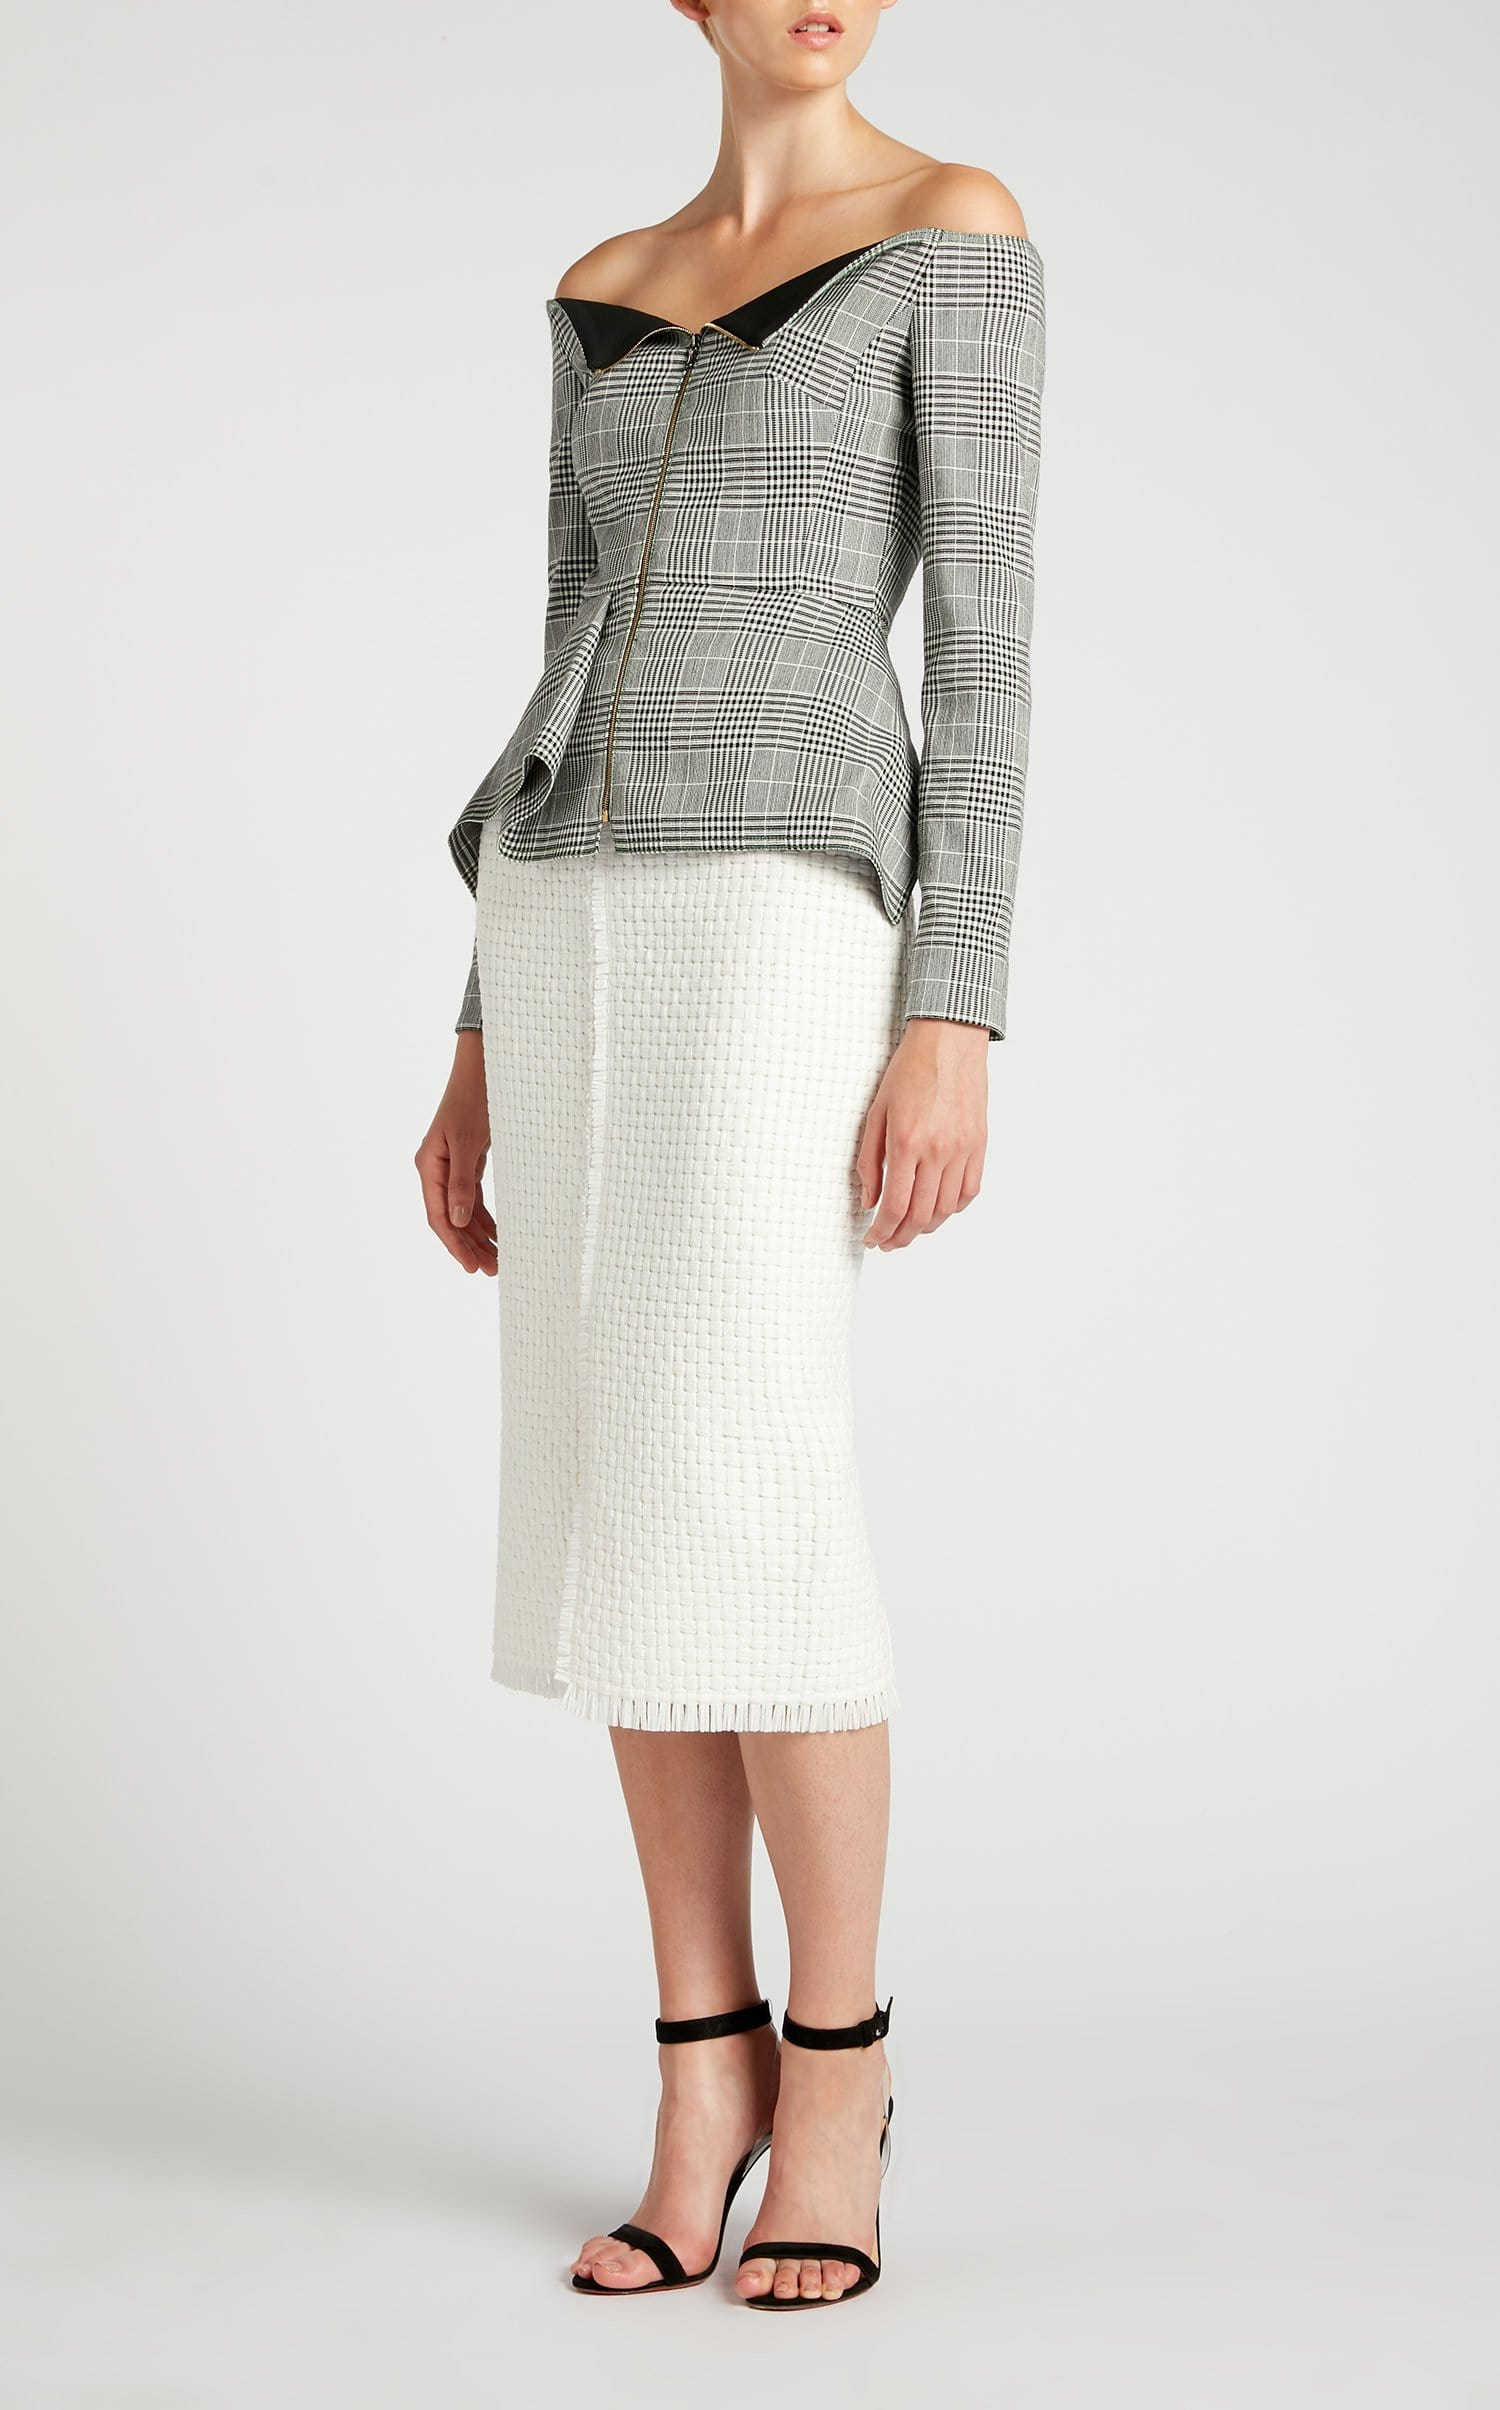 Endfield Jacket In Monochrome from Roland Mouret